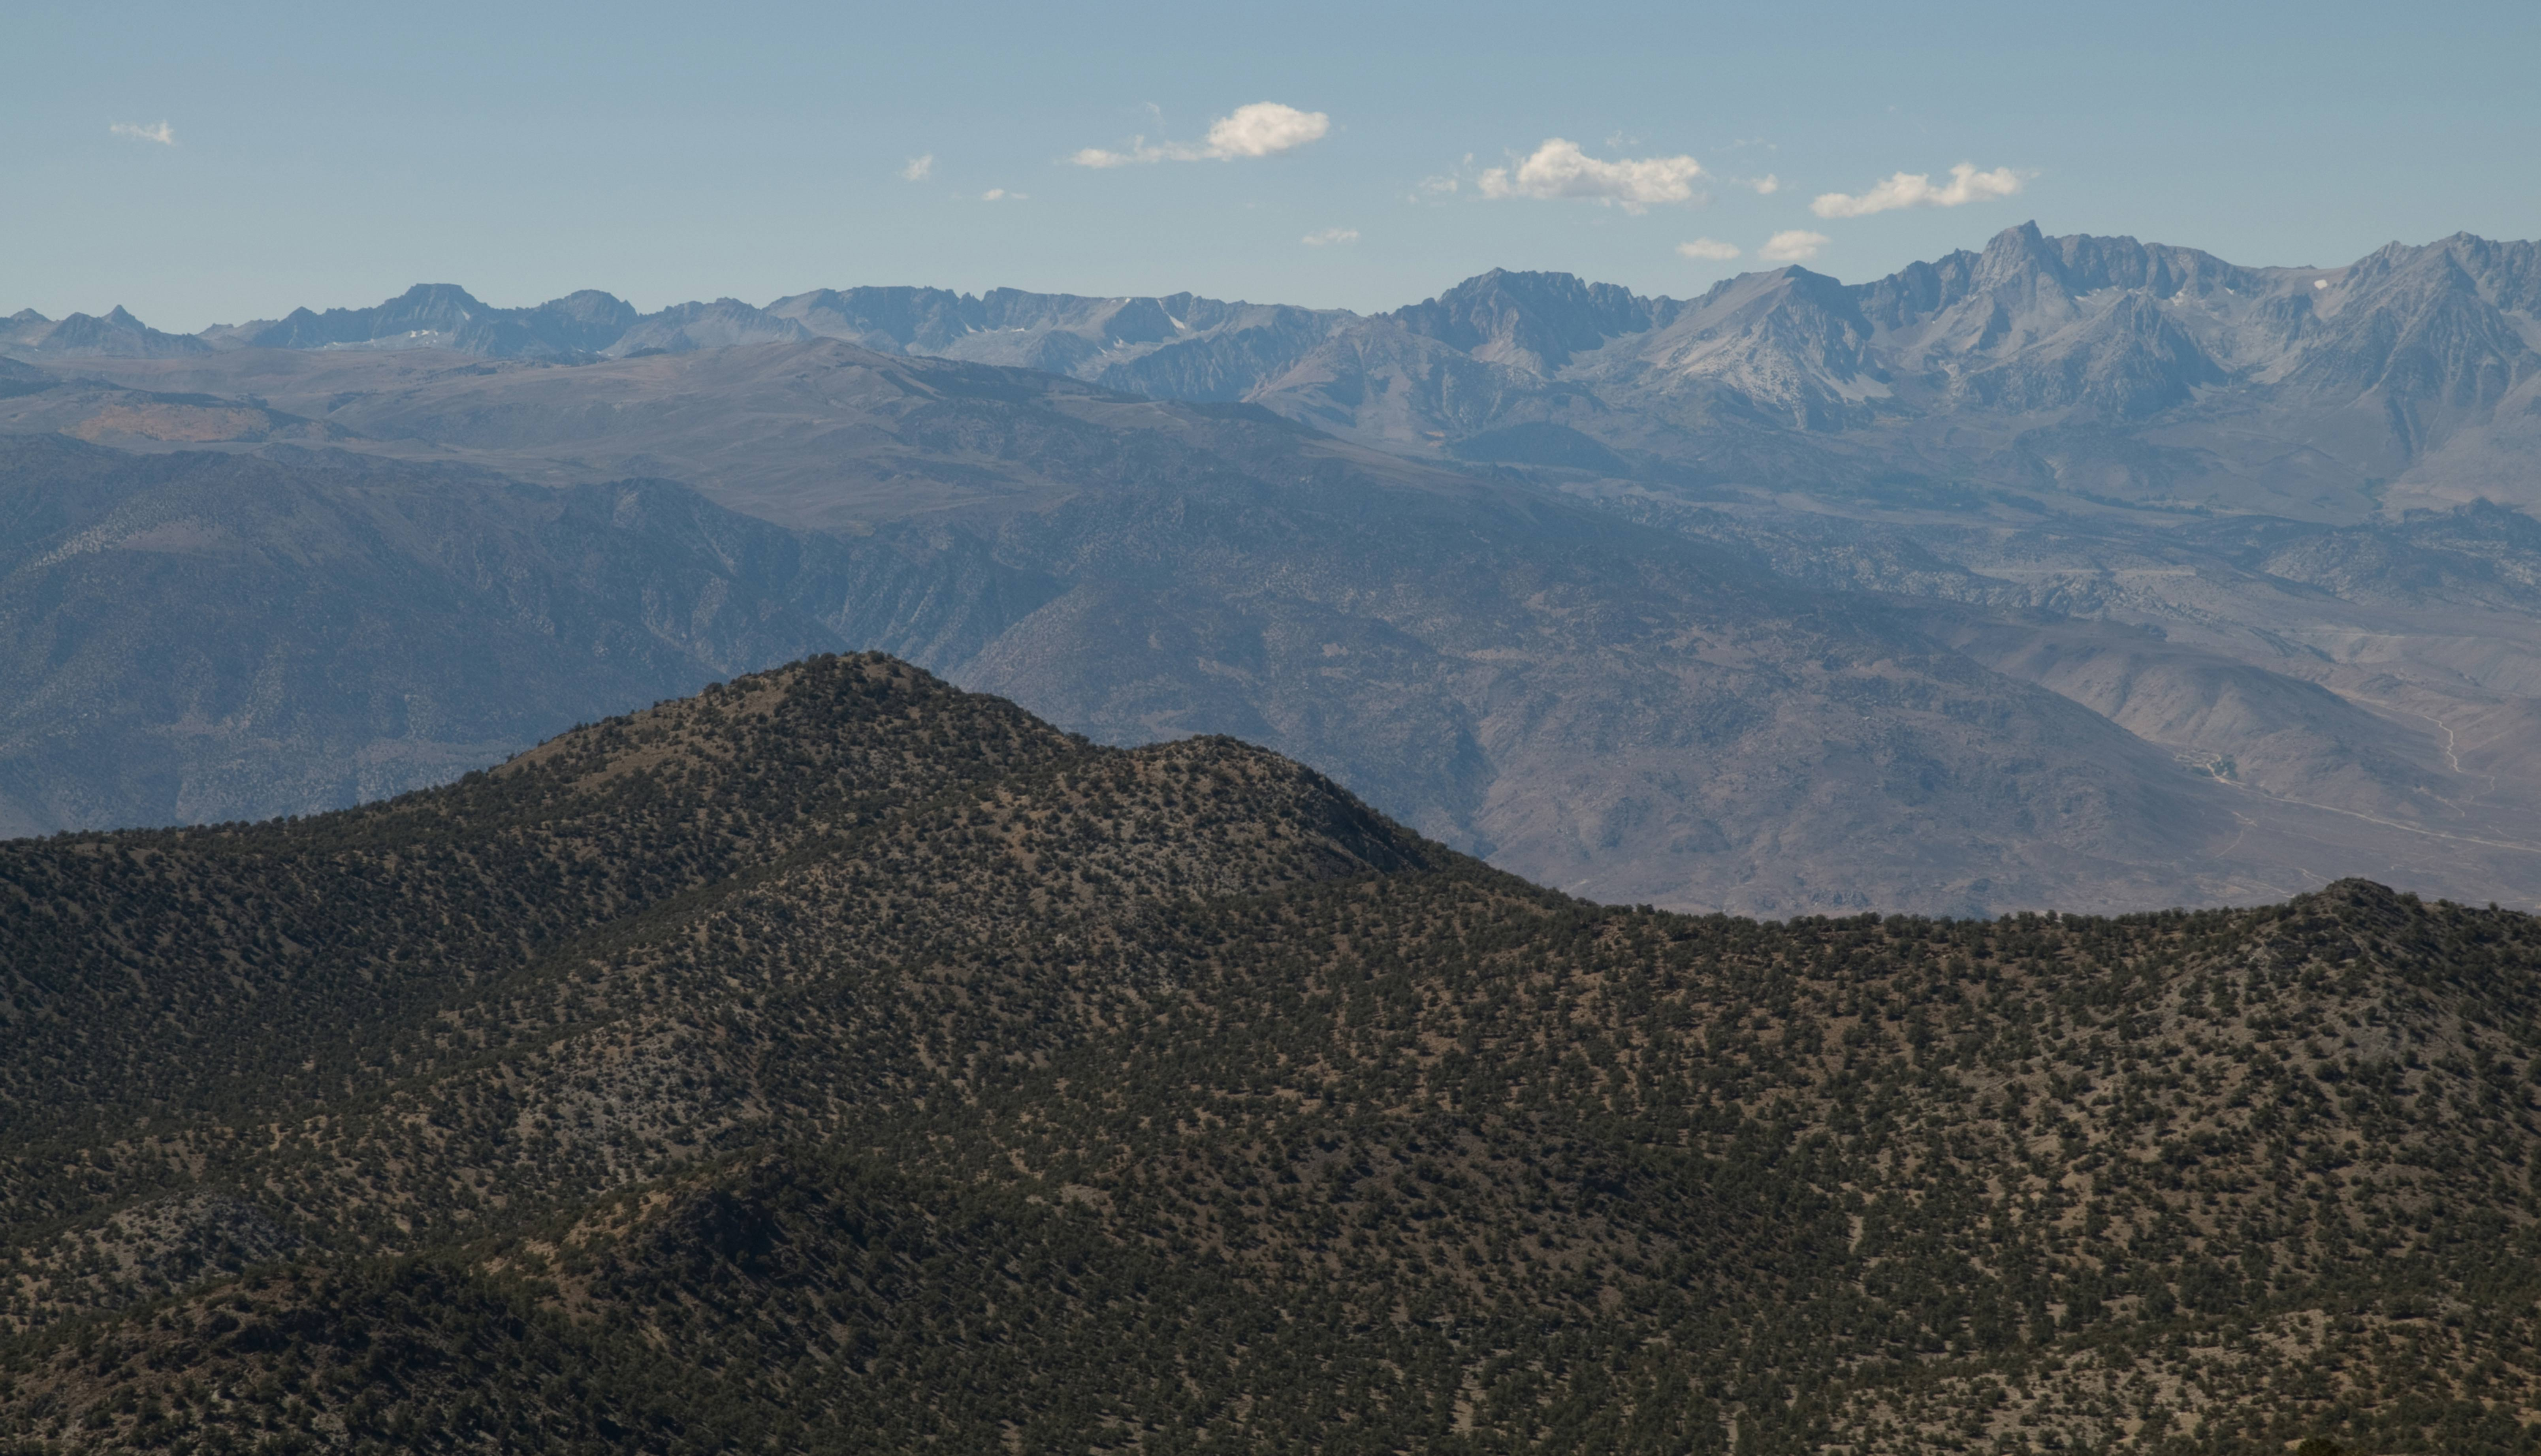 The Palisades from the Sierra View Point Vista